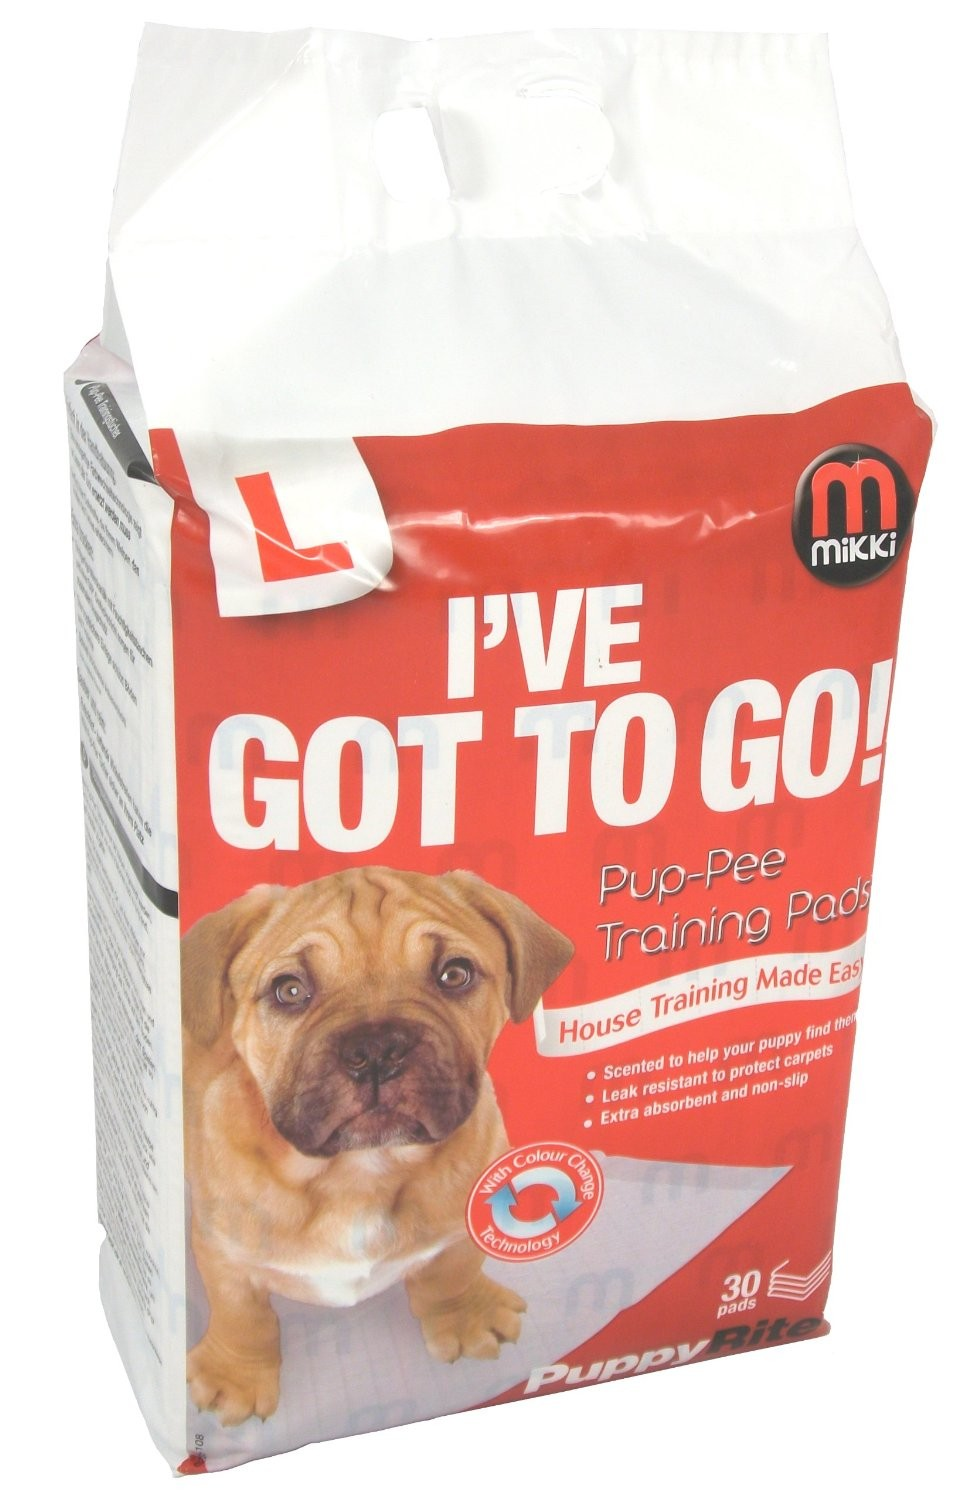 Pup-pee Pads Puppy Training Pads 30 Pack